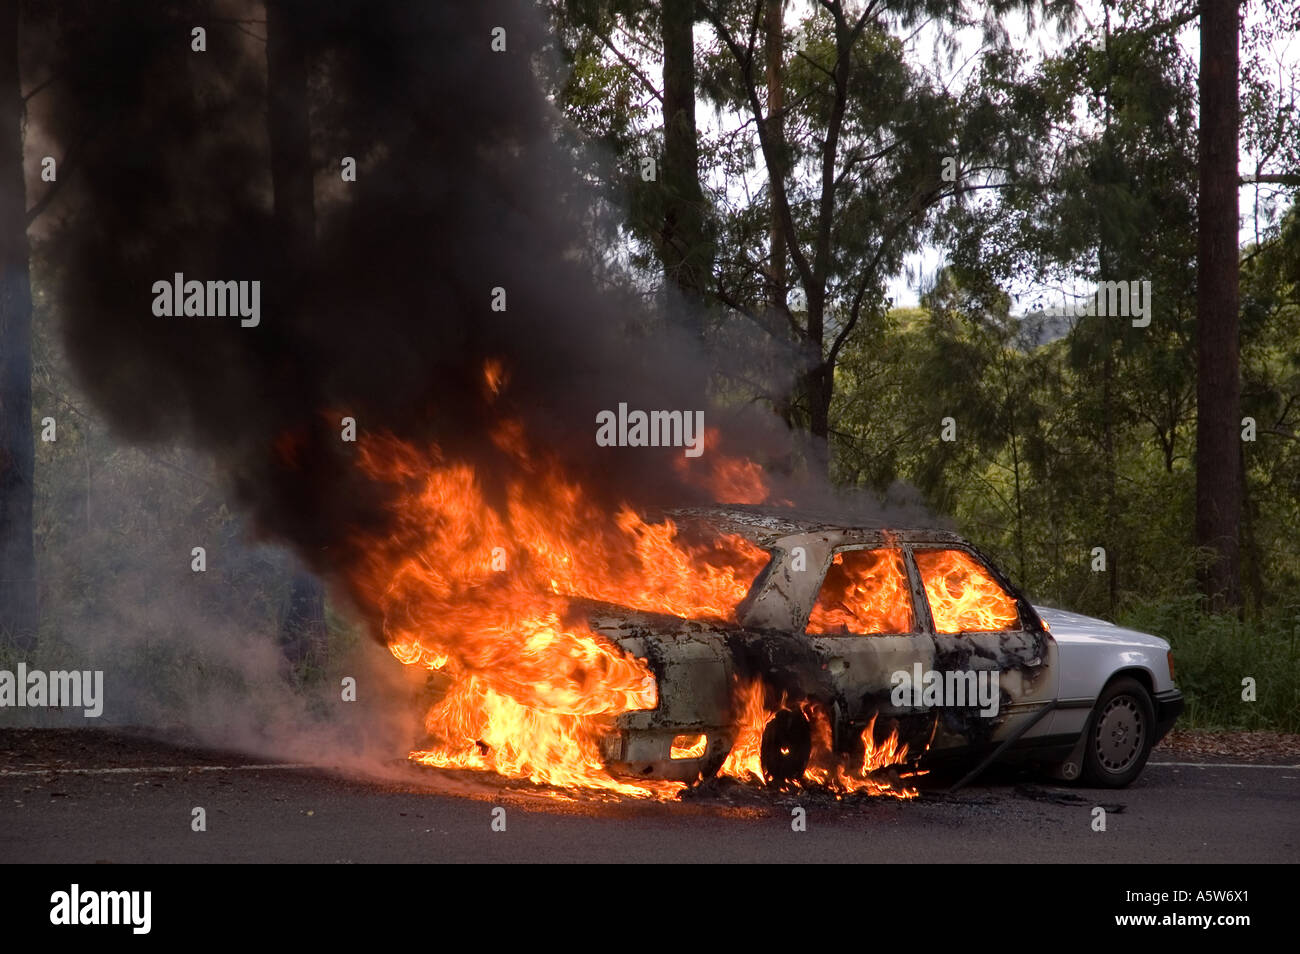 A Mercedes Car On Fire On An Australian Country Road. DSC_8579   Stock Image